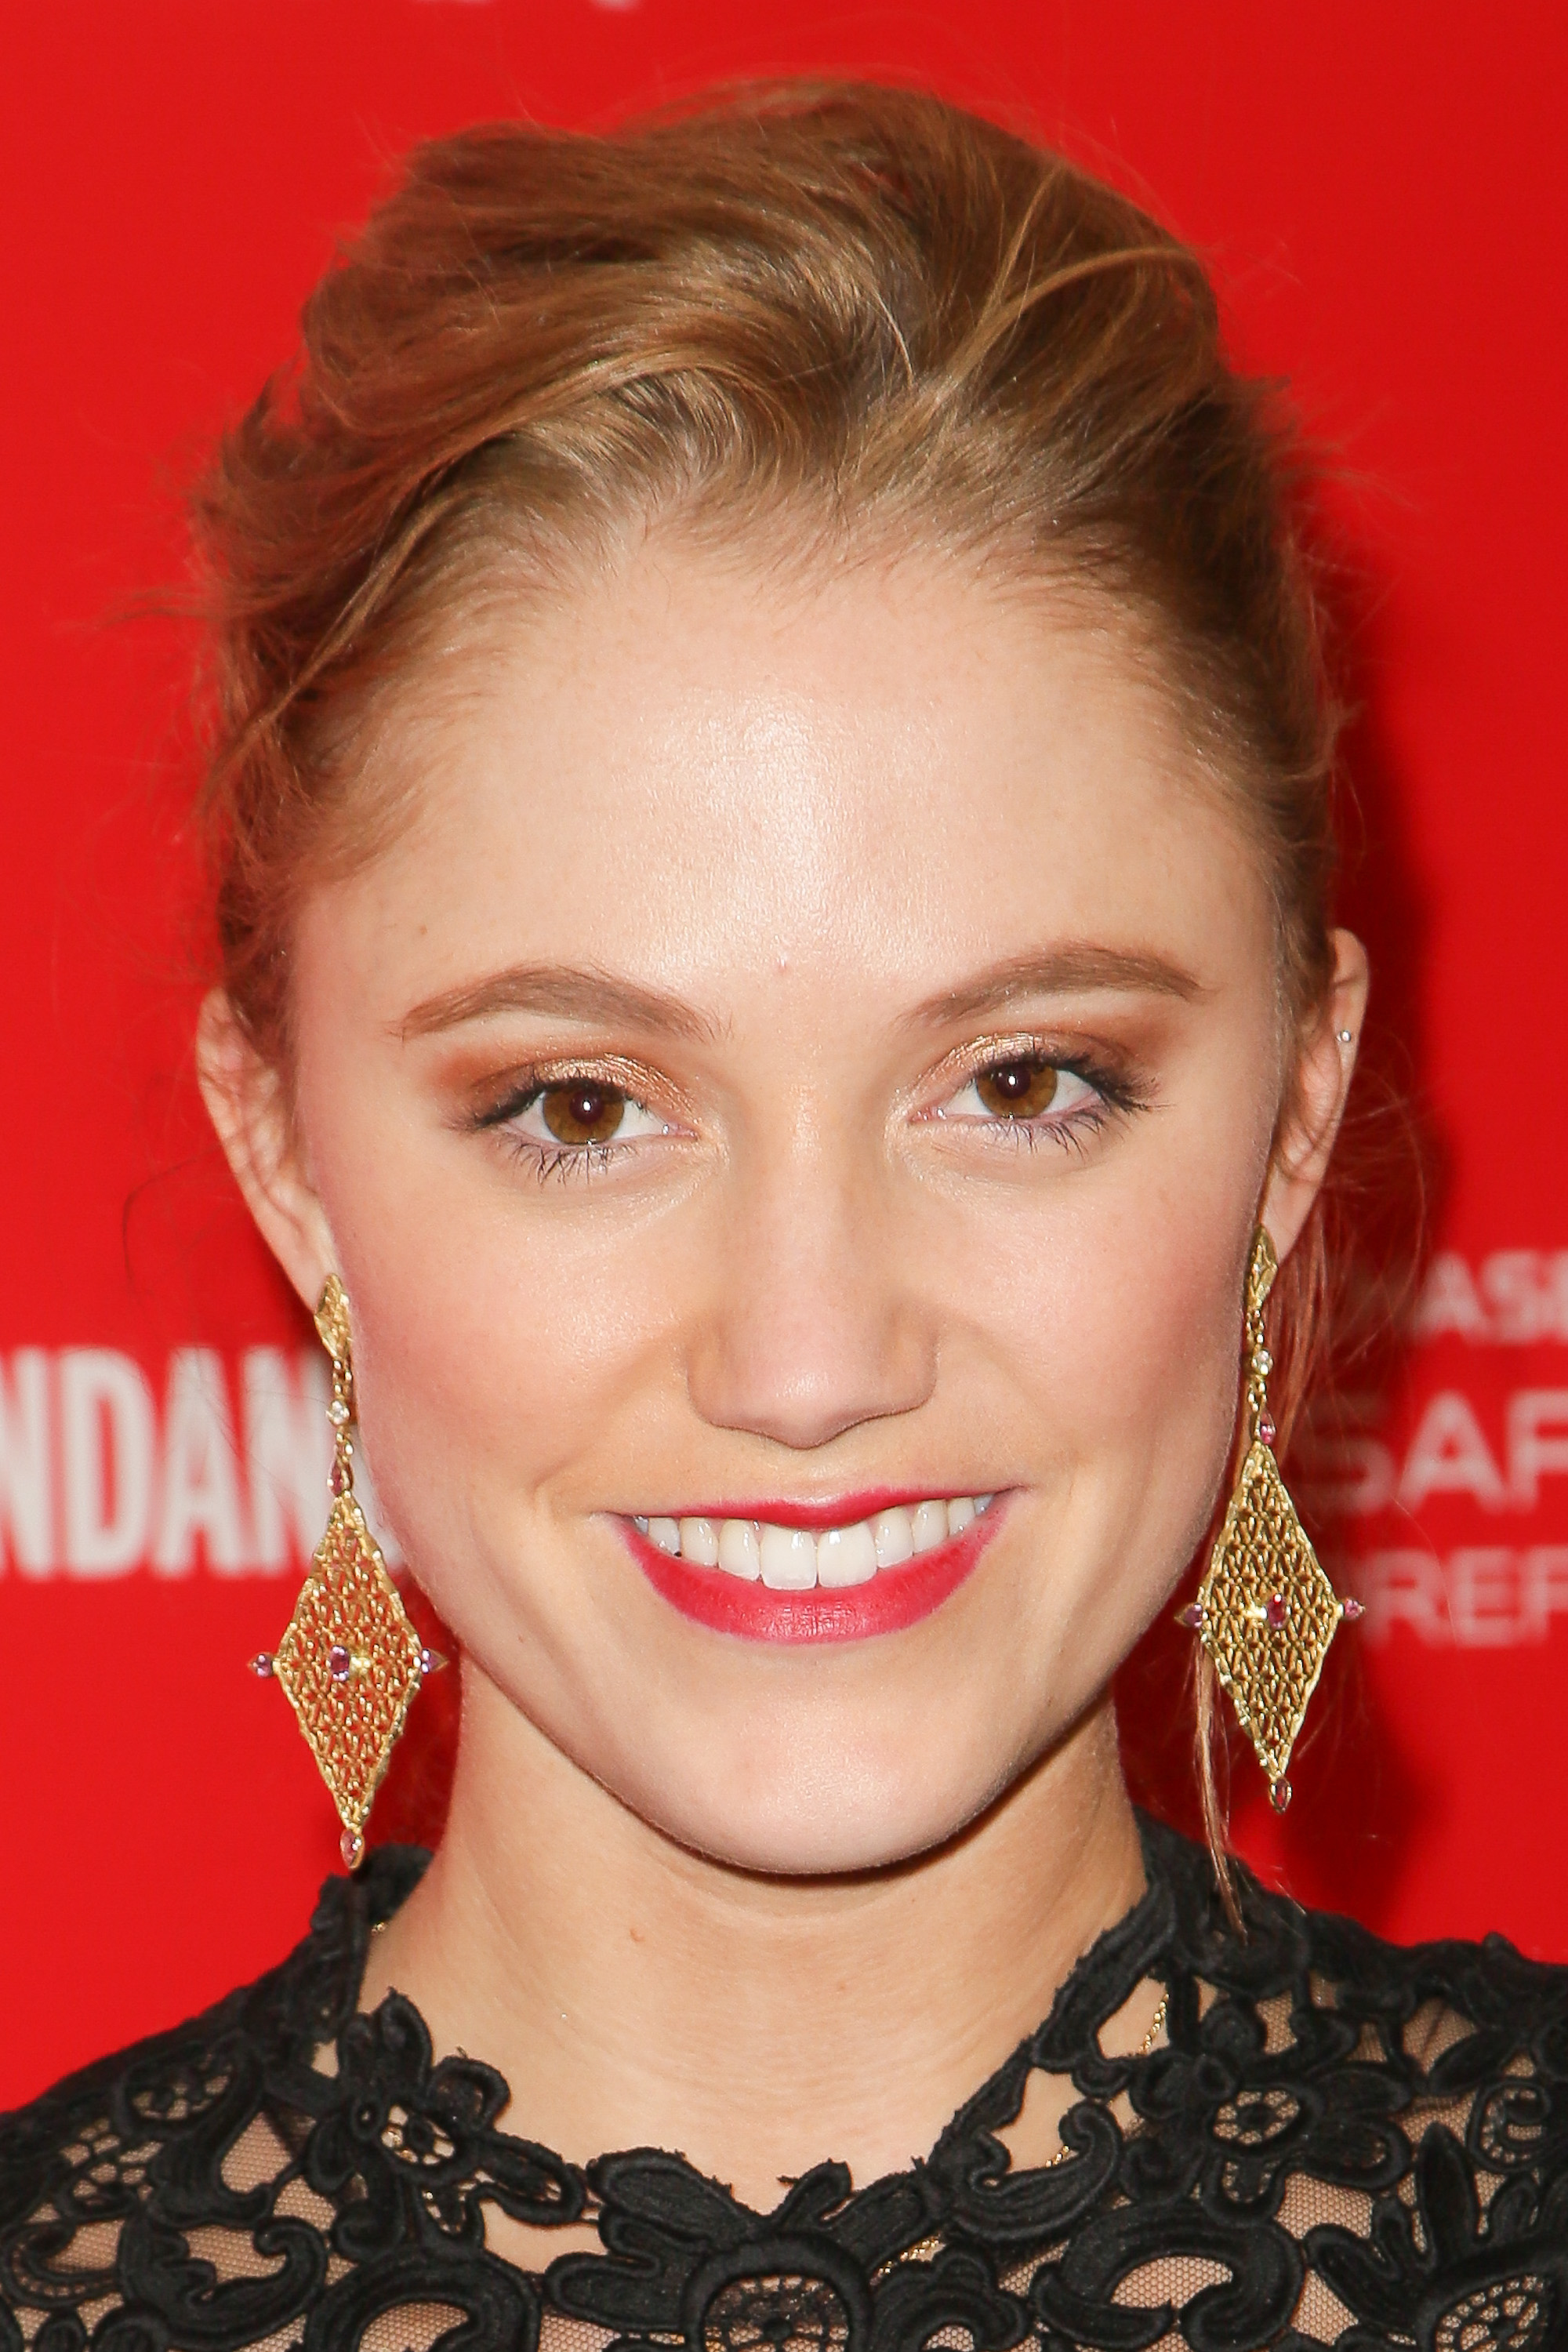 Actress Maika Monroe arrives at the  It Follows  premiere during the 2015 Sundance Film Festival on January 24, 2015 in Park City, Utah.